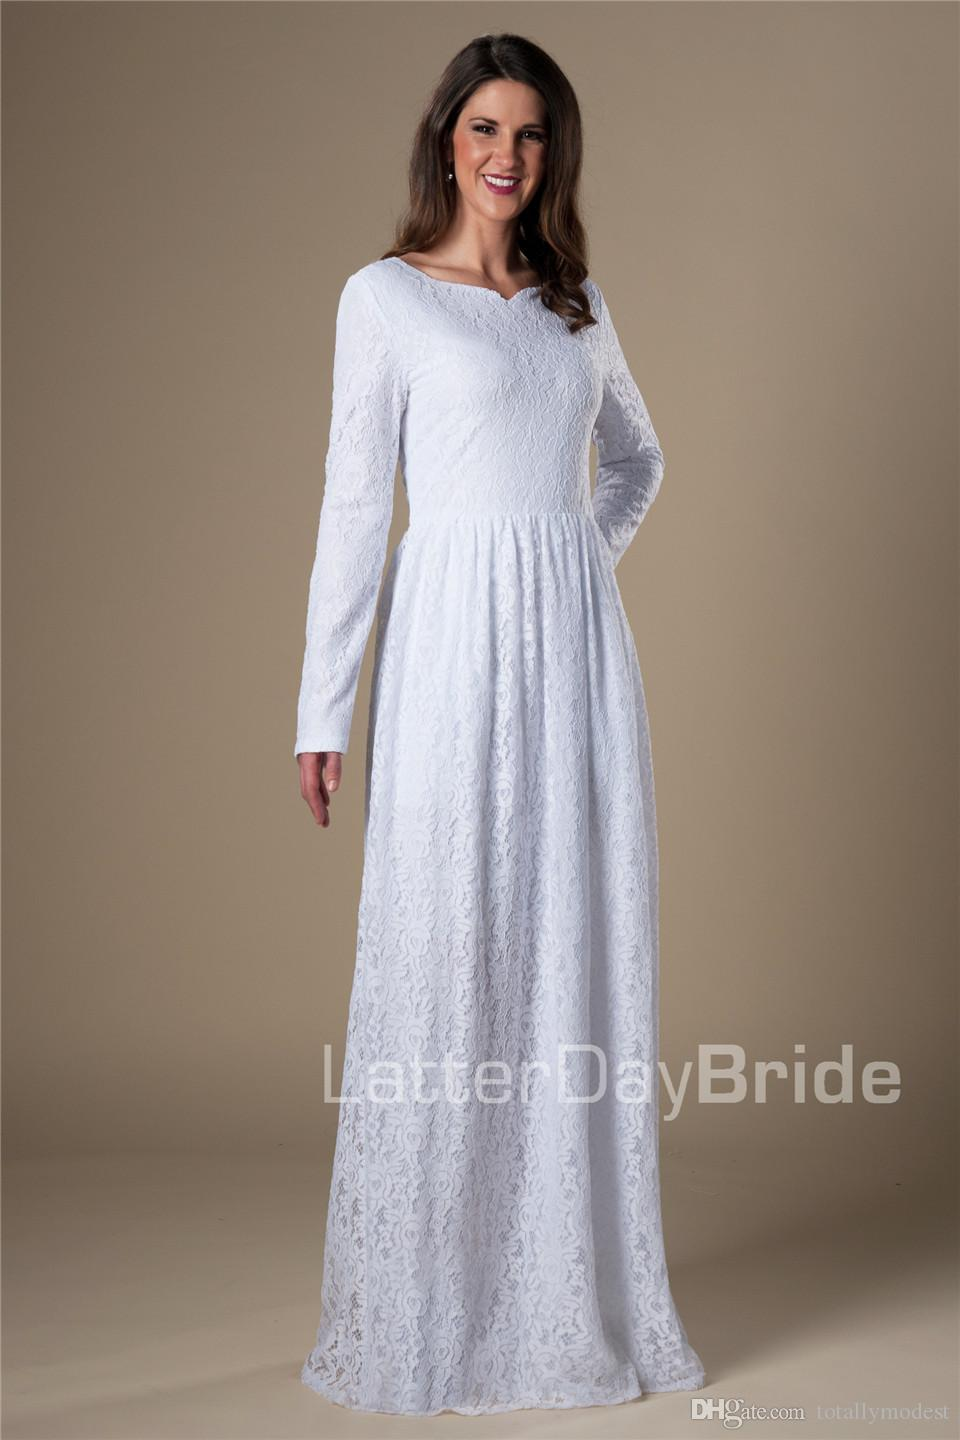 Discount Simple Vintage Lace Long Sleeves Modest Wedding. Bohemian Wedding Dresses Toronto. Unique Vintage Wedding Dresses Australia. Country Wedding Dress Belts. Wedding Dresses Princess Puffy. Bohemian Style Wedding Dress Melbourne. Vera Wang Wedding Dresses To Rent. Informal Wedding Dresses With Sleeves Uk. Wedding Dresses Hollywood Style